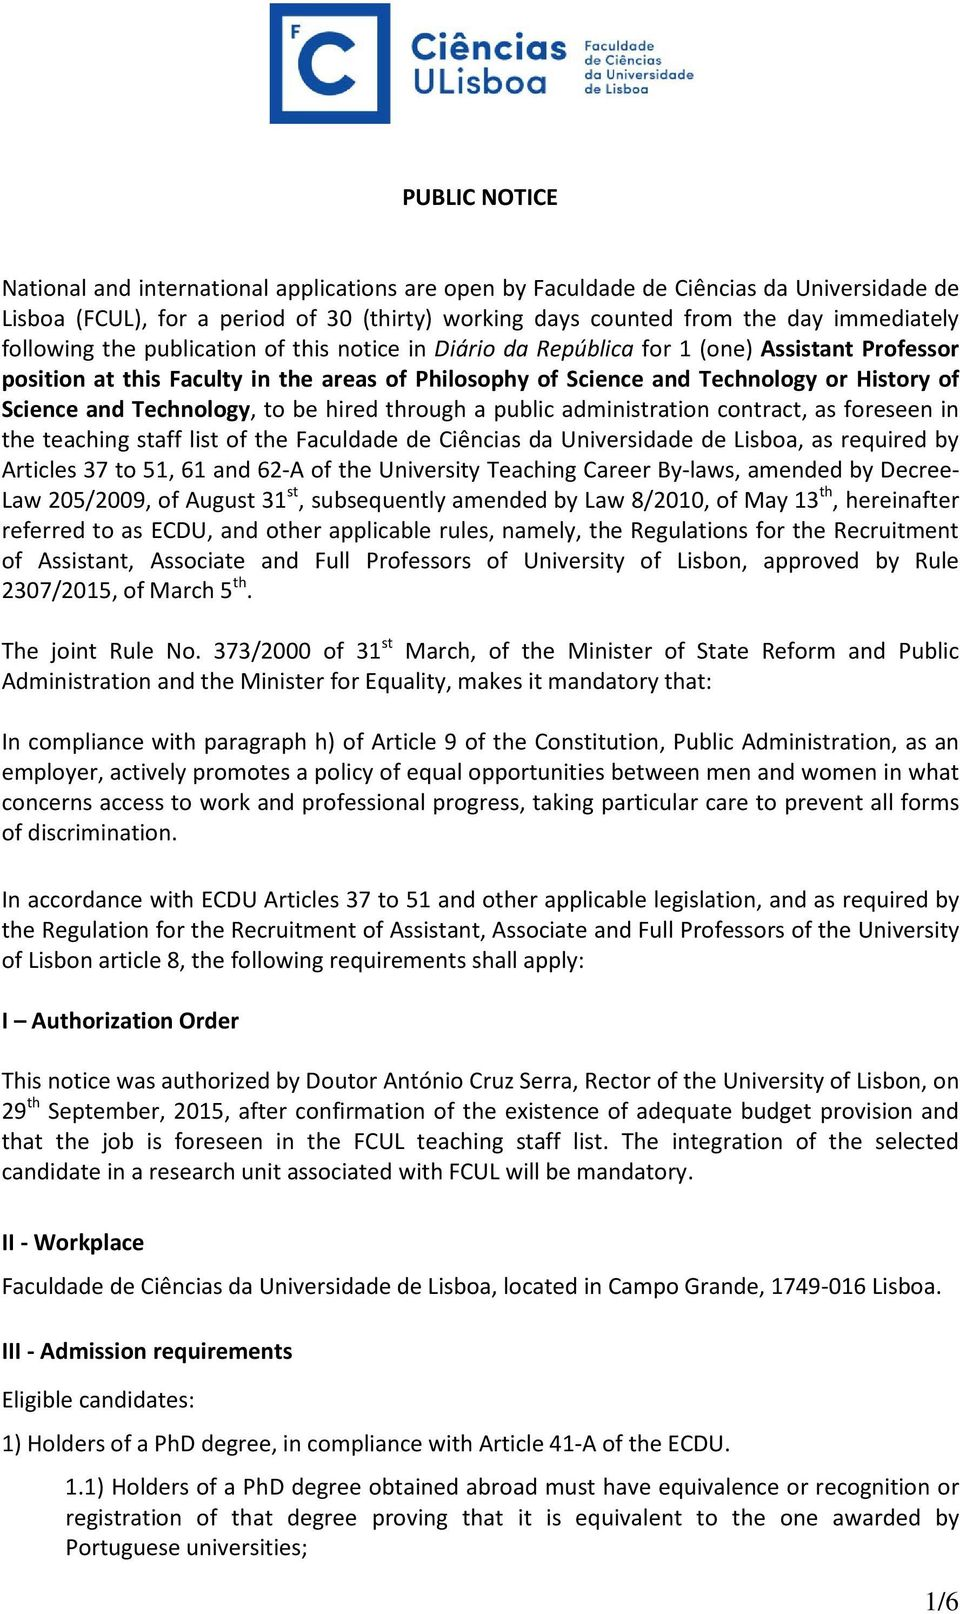 Technology, to be hired through a public administration contract, as foreseen in the teaching staff list of the Faculdade de Ciências da Universidade de Lisboa, as required by Articles 37 to 51, 61